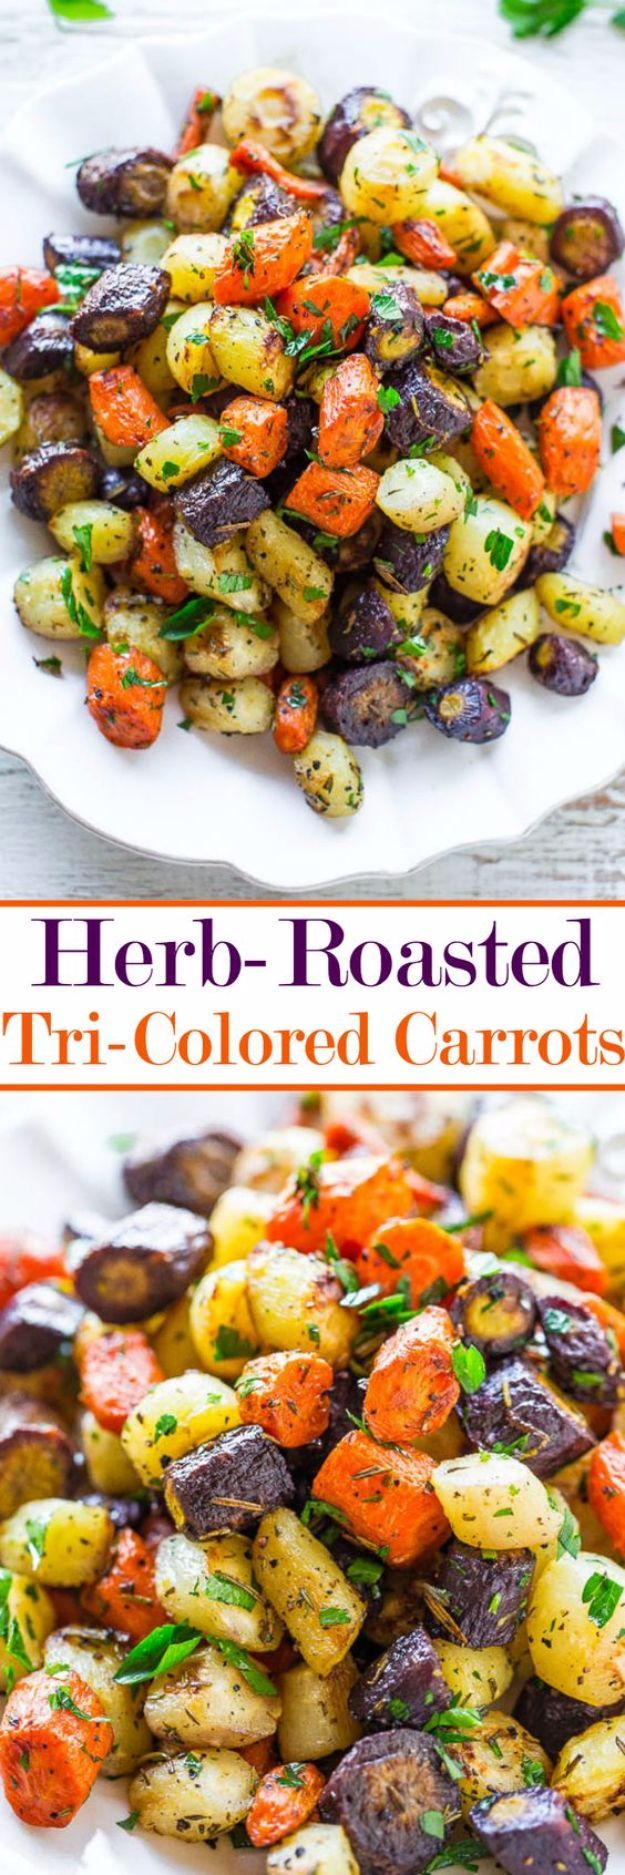 Best Easter Dinner Recipes - Herb Roasted Tri Colored Carrots - Easy Recipe Ideas for Easter Dinners and Holiday Meals for Families - Side Dishes, Slow Cooker Recipe Tutorials, Main Courses, Traditional Meat, Vegetable and Dessert Ideas - Desserts, Pies, Cakes, Ham and Beef, Lamb - DIY Projects and Crafts by DIY JOY http://diyjoy.com/easter-dinner-recipes